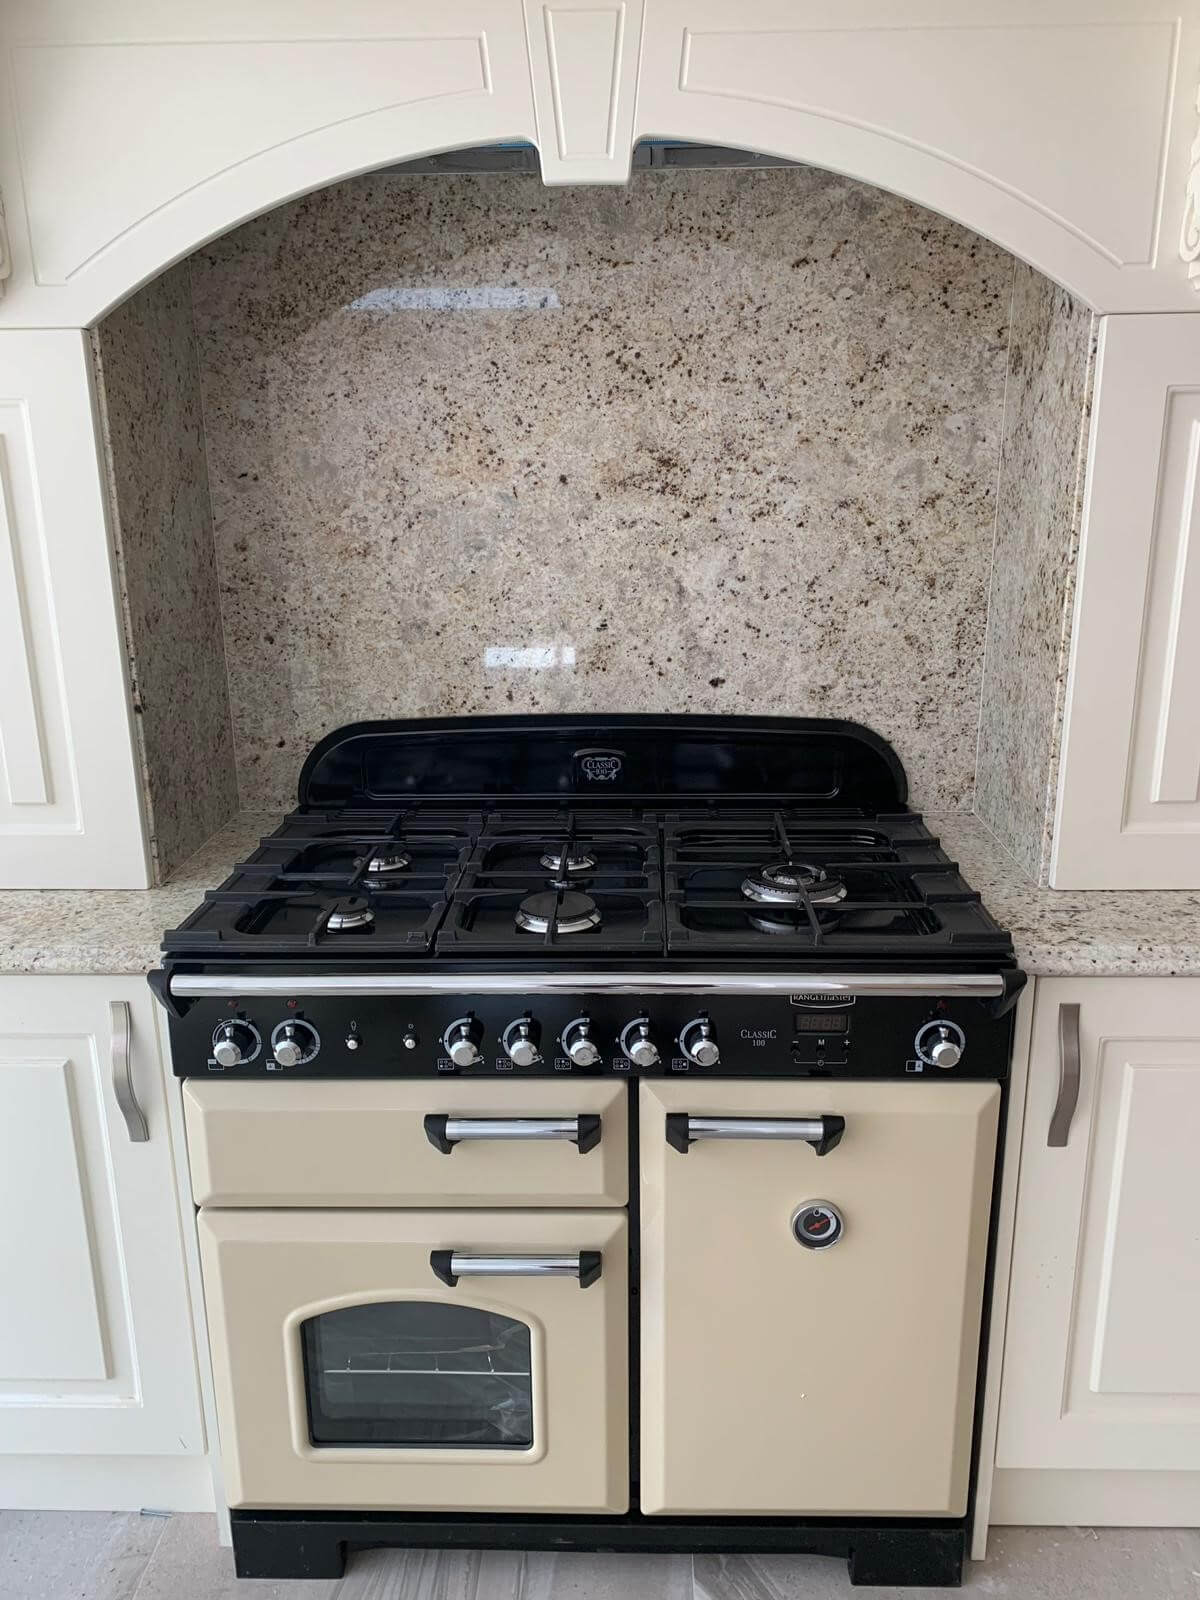 This image shows a Range Master cooker fitted into a kitchen in Ormskirk, Lancashire.